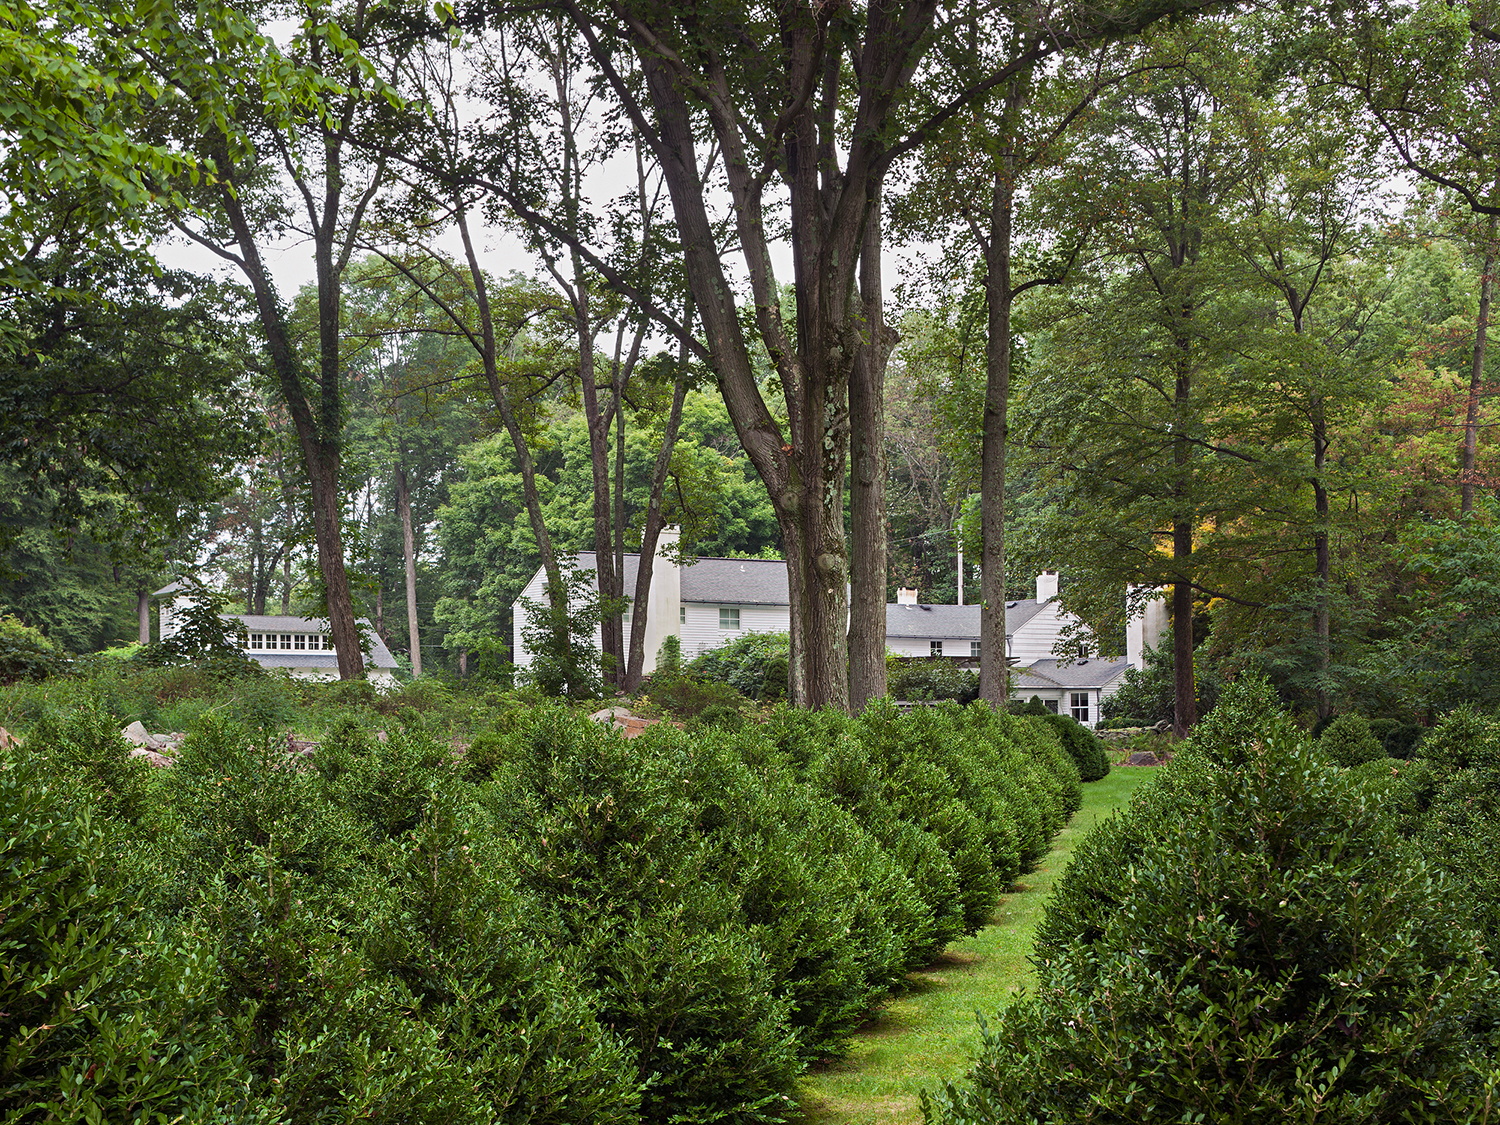 AT THE BOXWOOD FARM, THE GARDENS REFER TO THE AREA'S AGRICULTURAL PAST